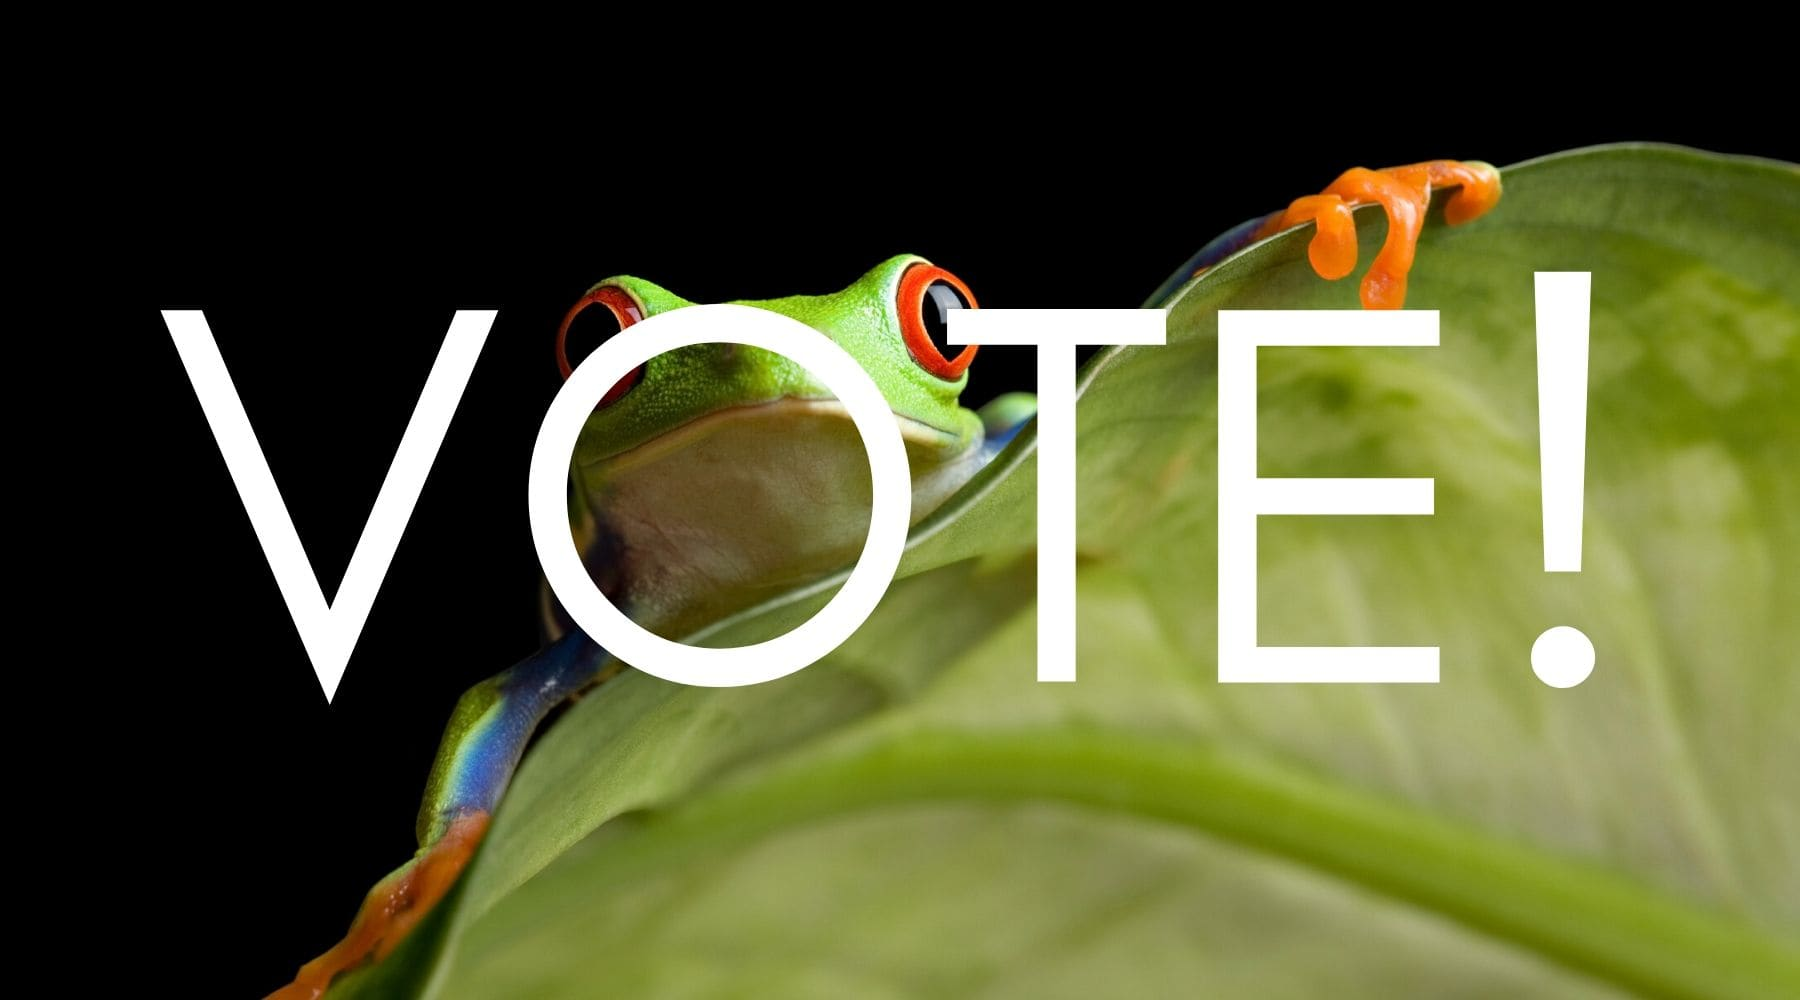 Science Shepherd Homeschool Family Favorite tree frog with Vote! text